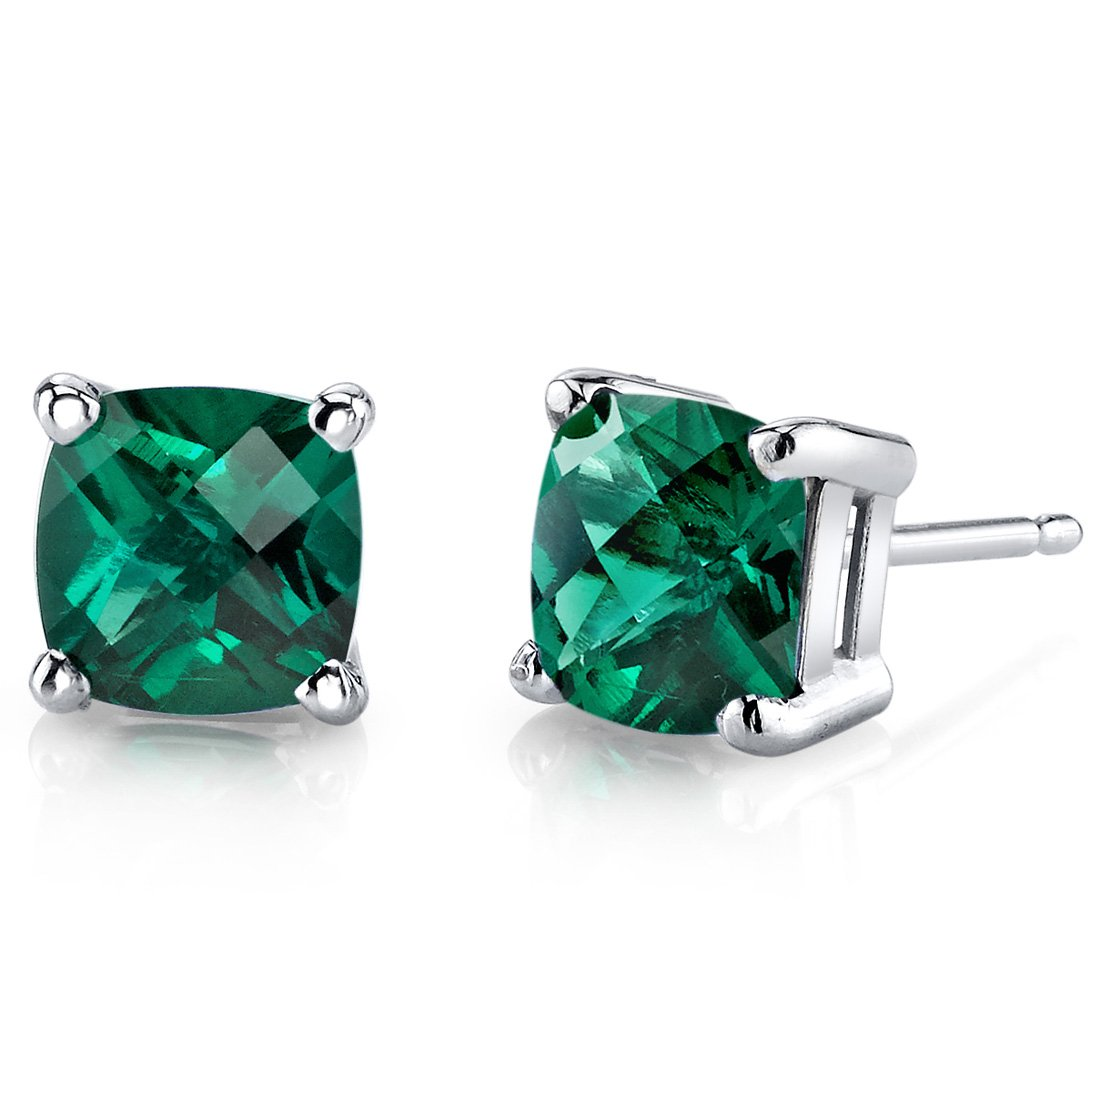 14 Karat White Gold Cushion Cut 1.75 Carats Created Emerald Stud Earrings by Peora